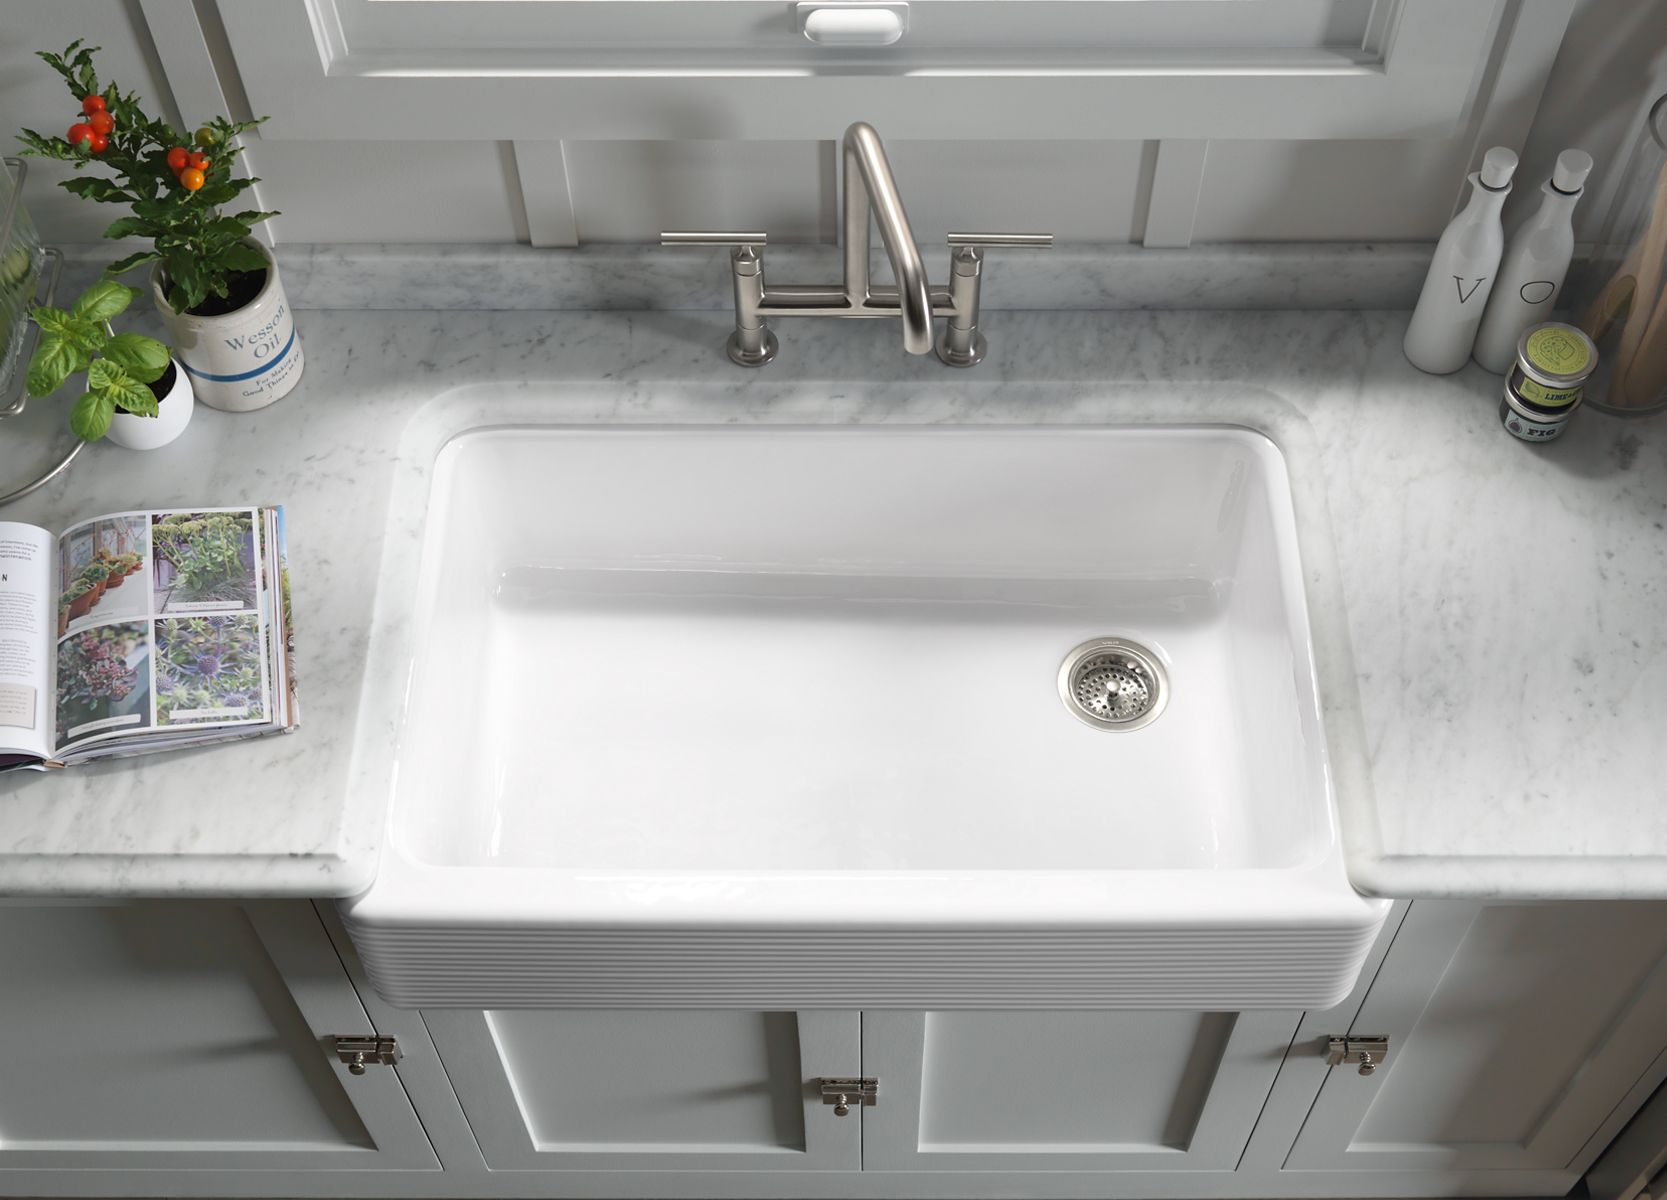 Apron Front Sinks An Easy Kitchen Update